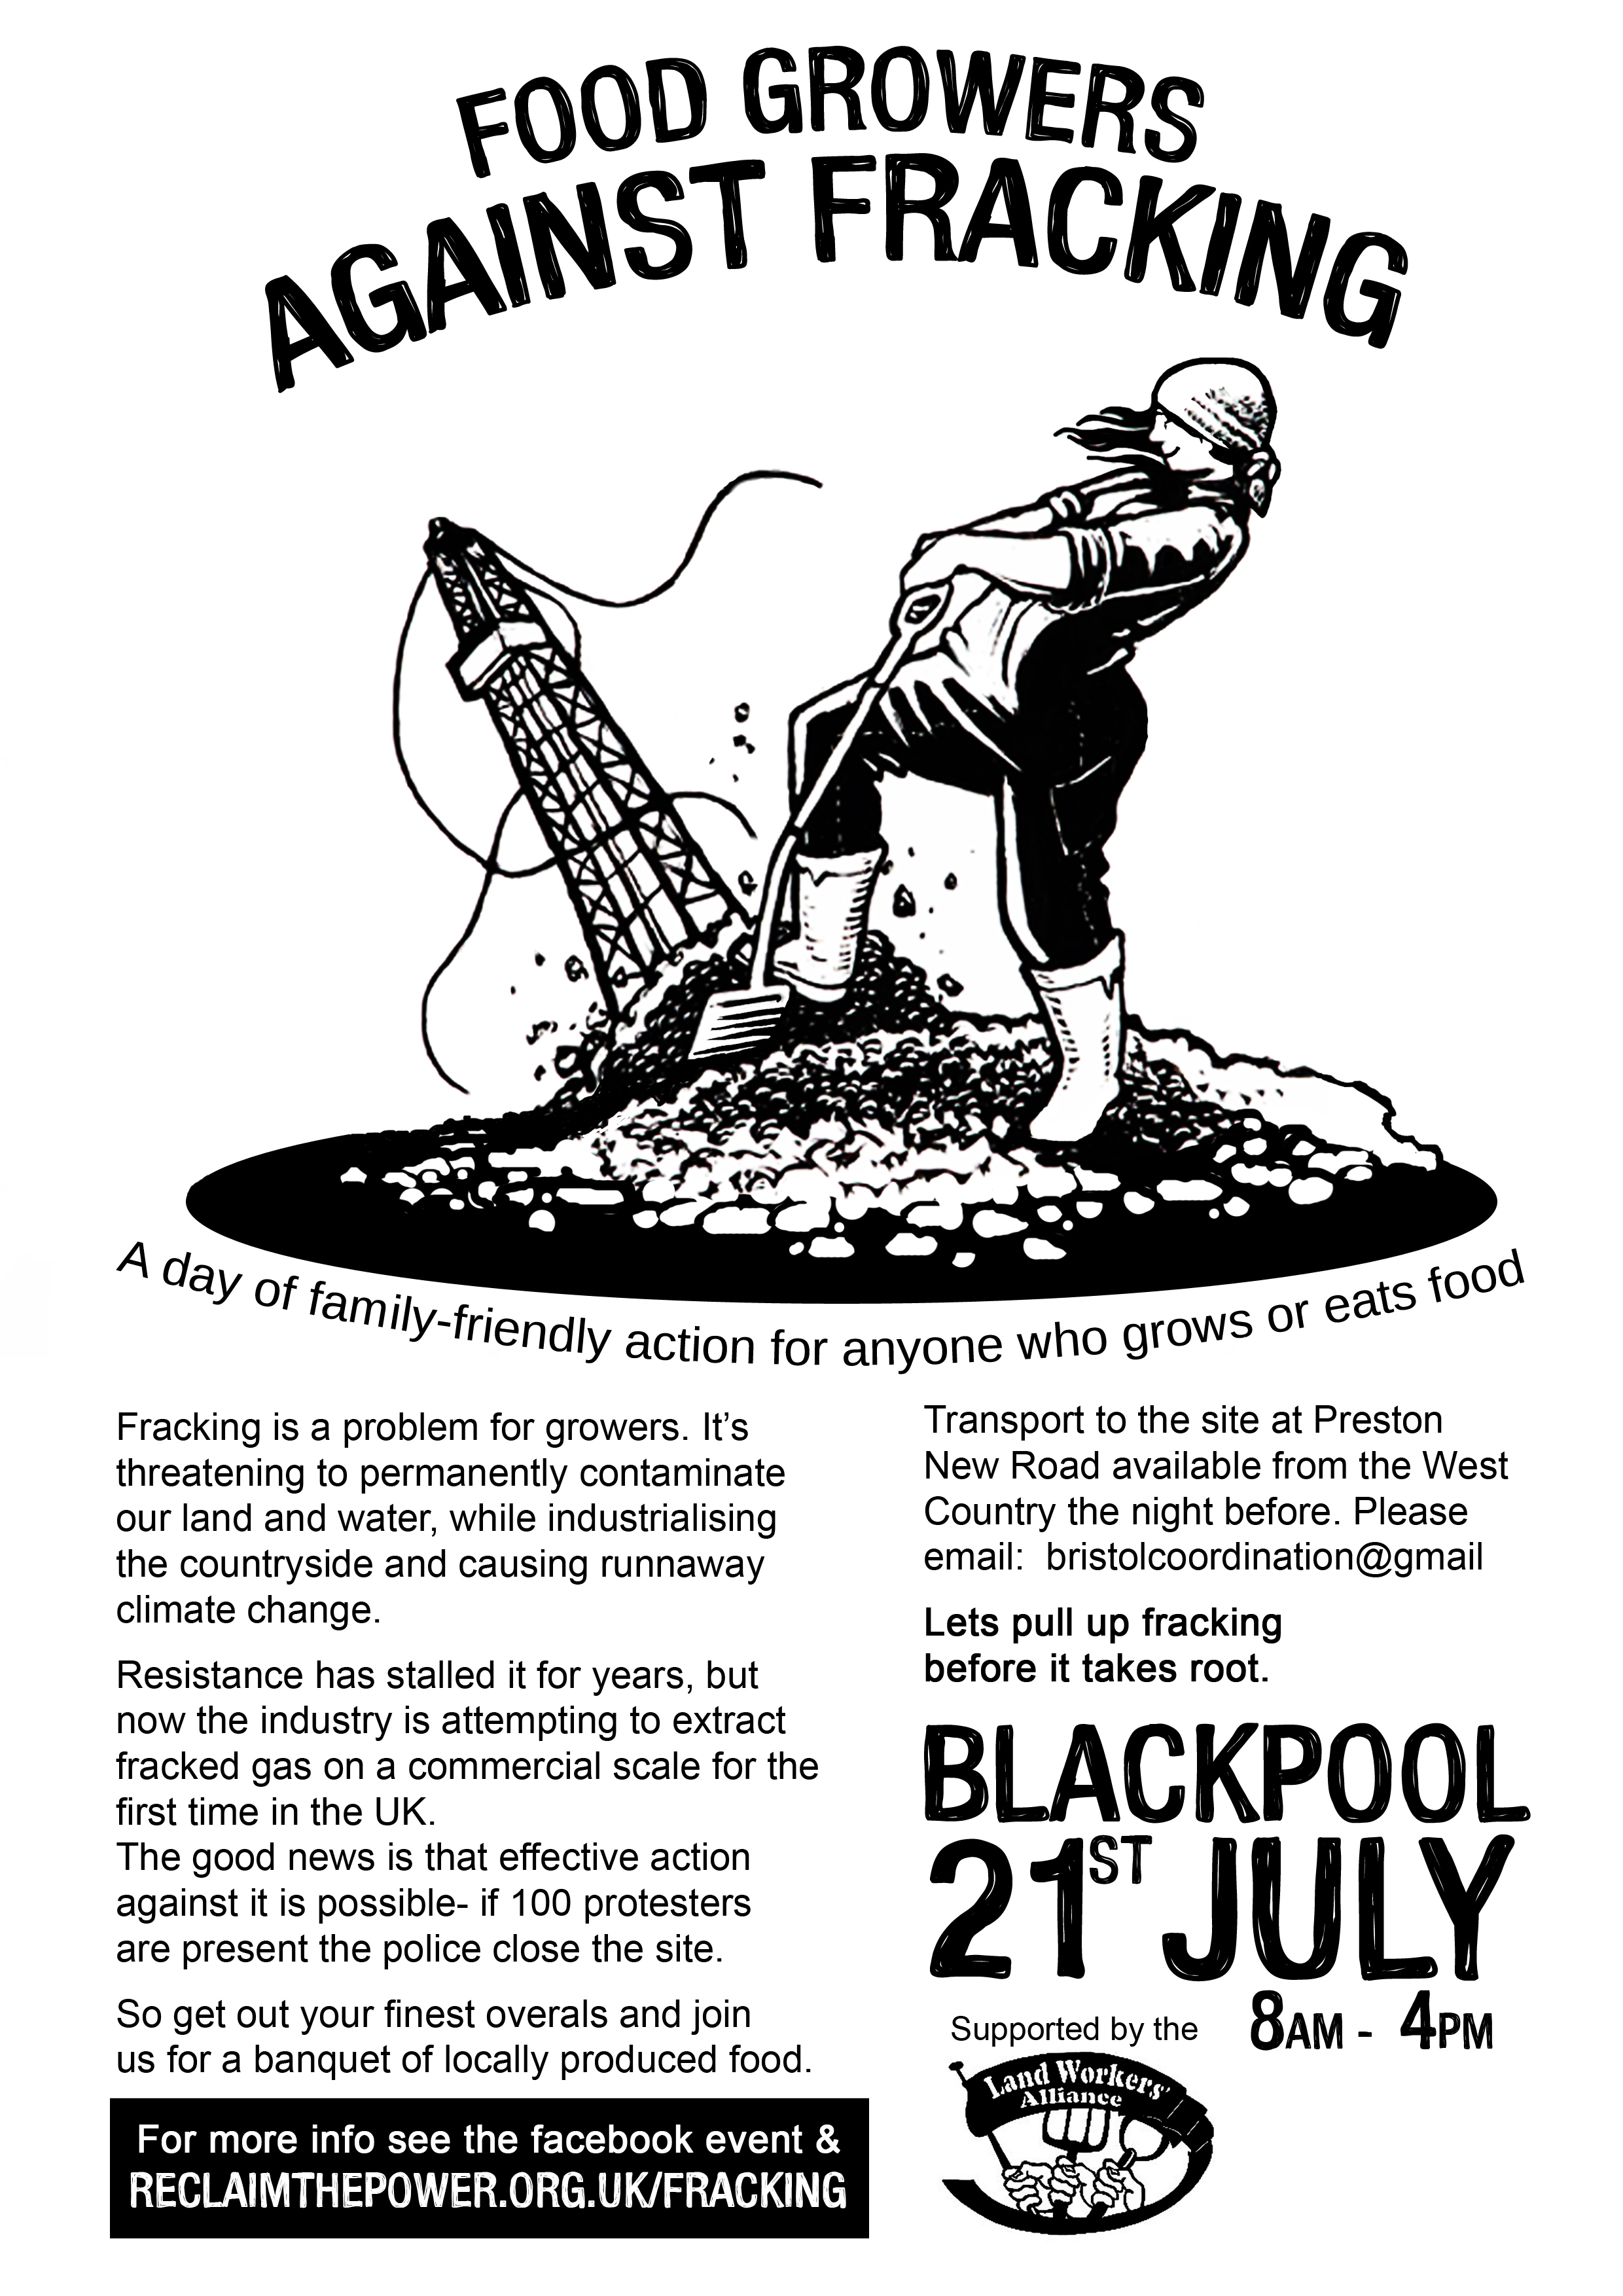 Foodgrowers against fracking flyer